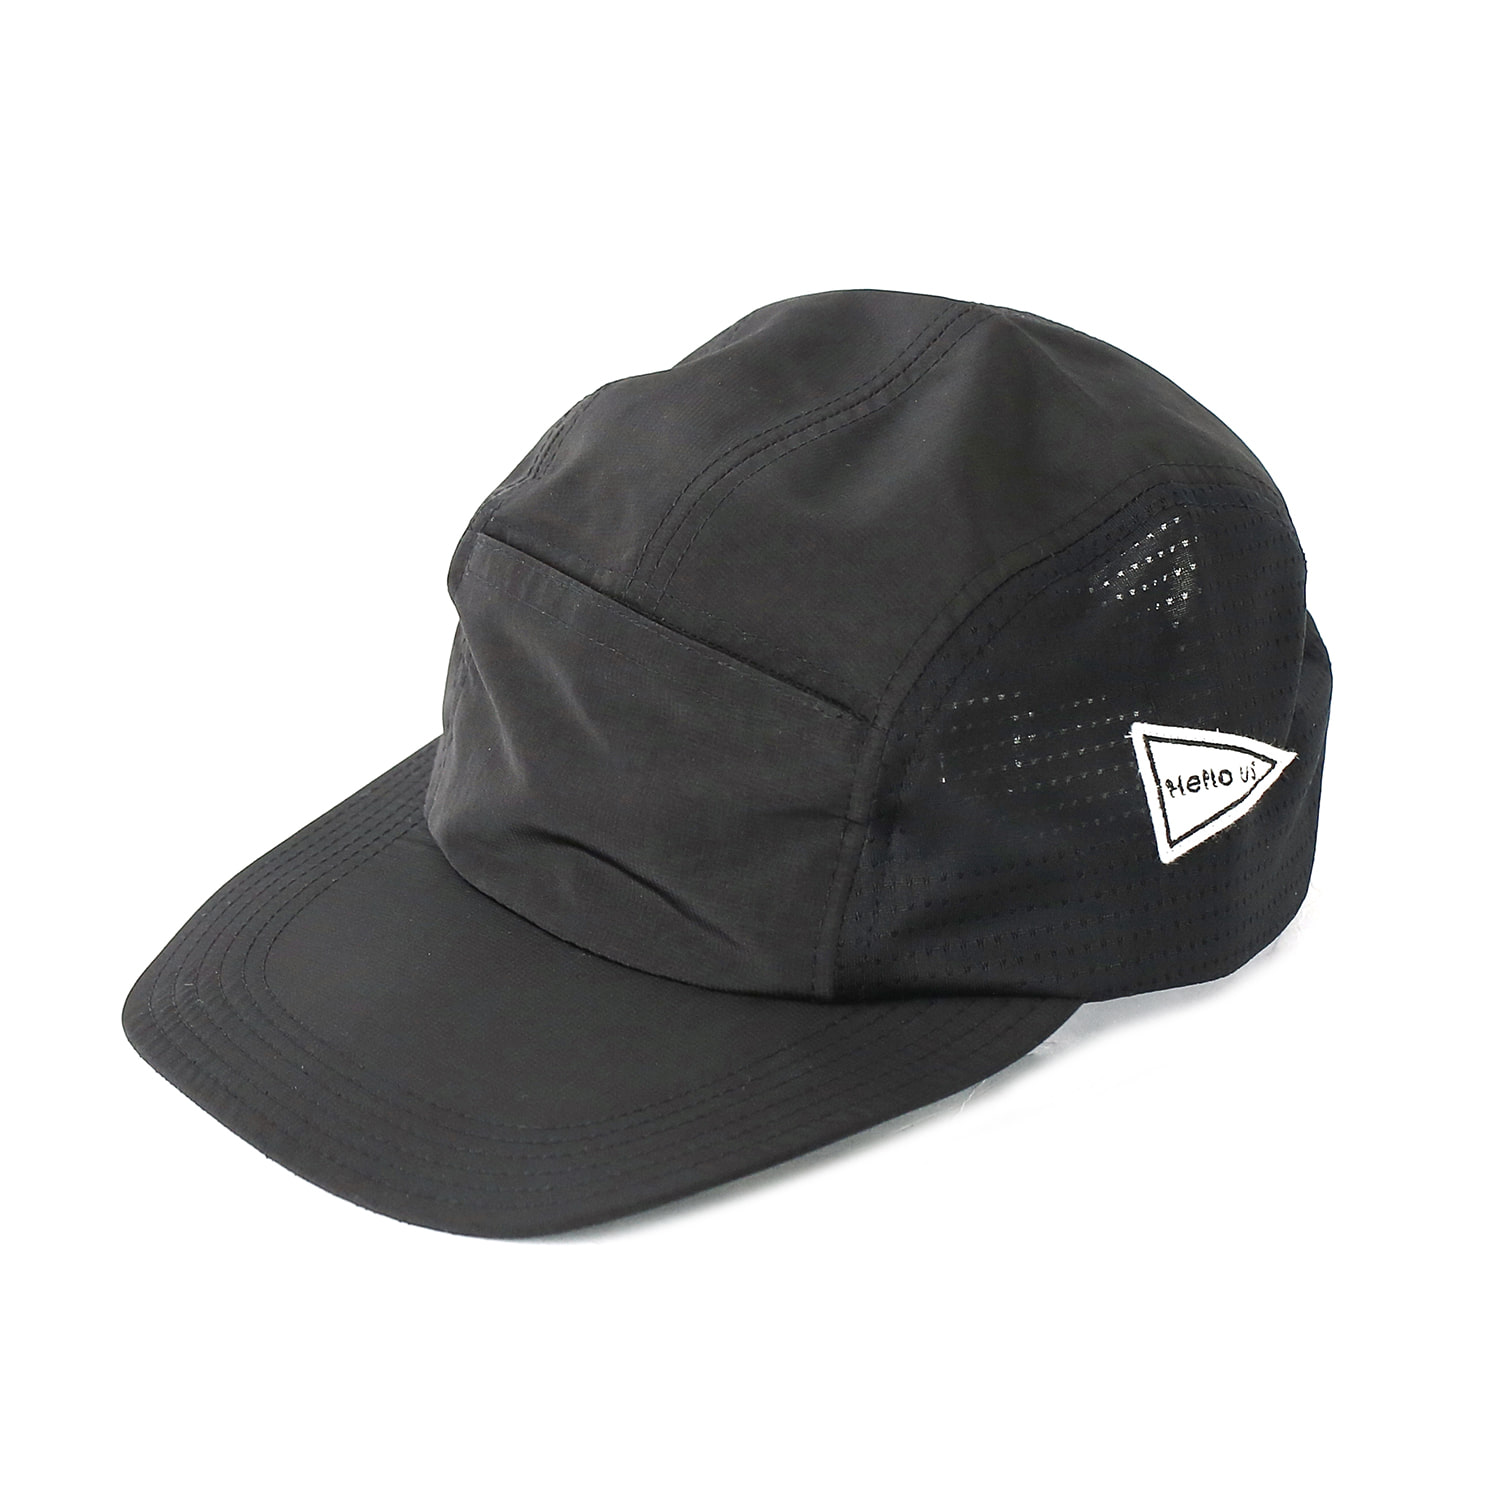 Waterproof Jet Cap/SB181-0209